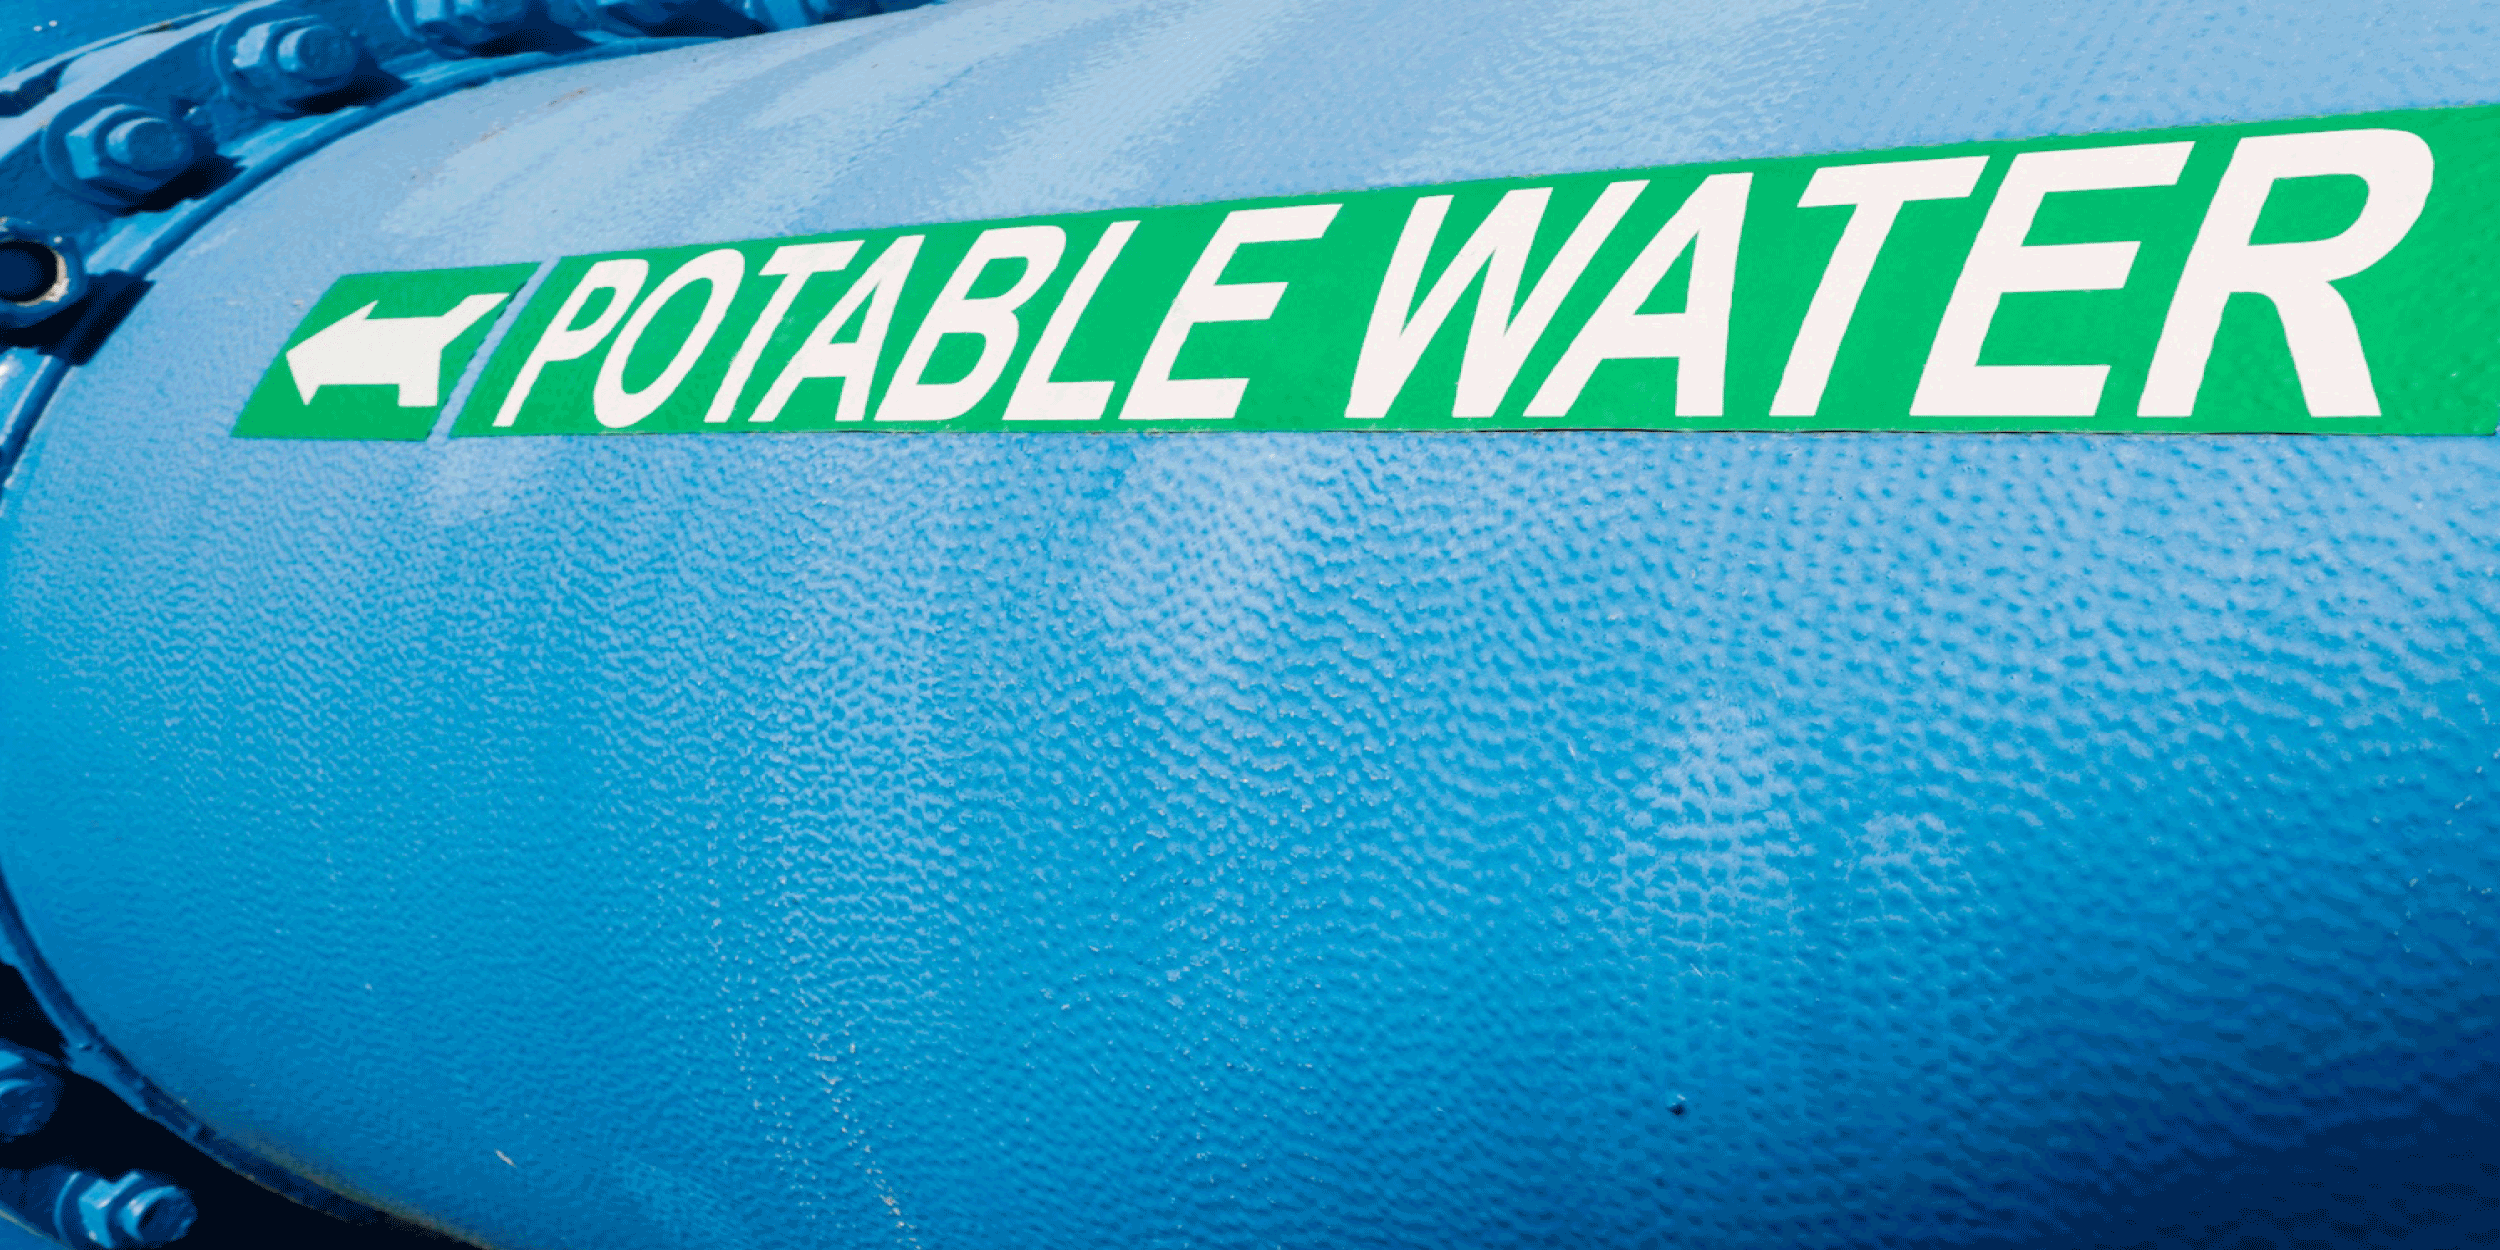 potable water